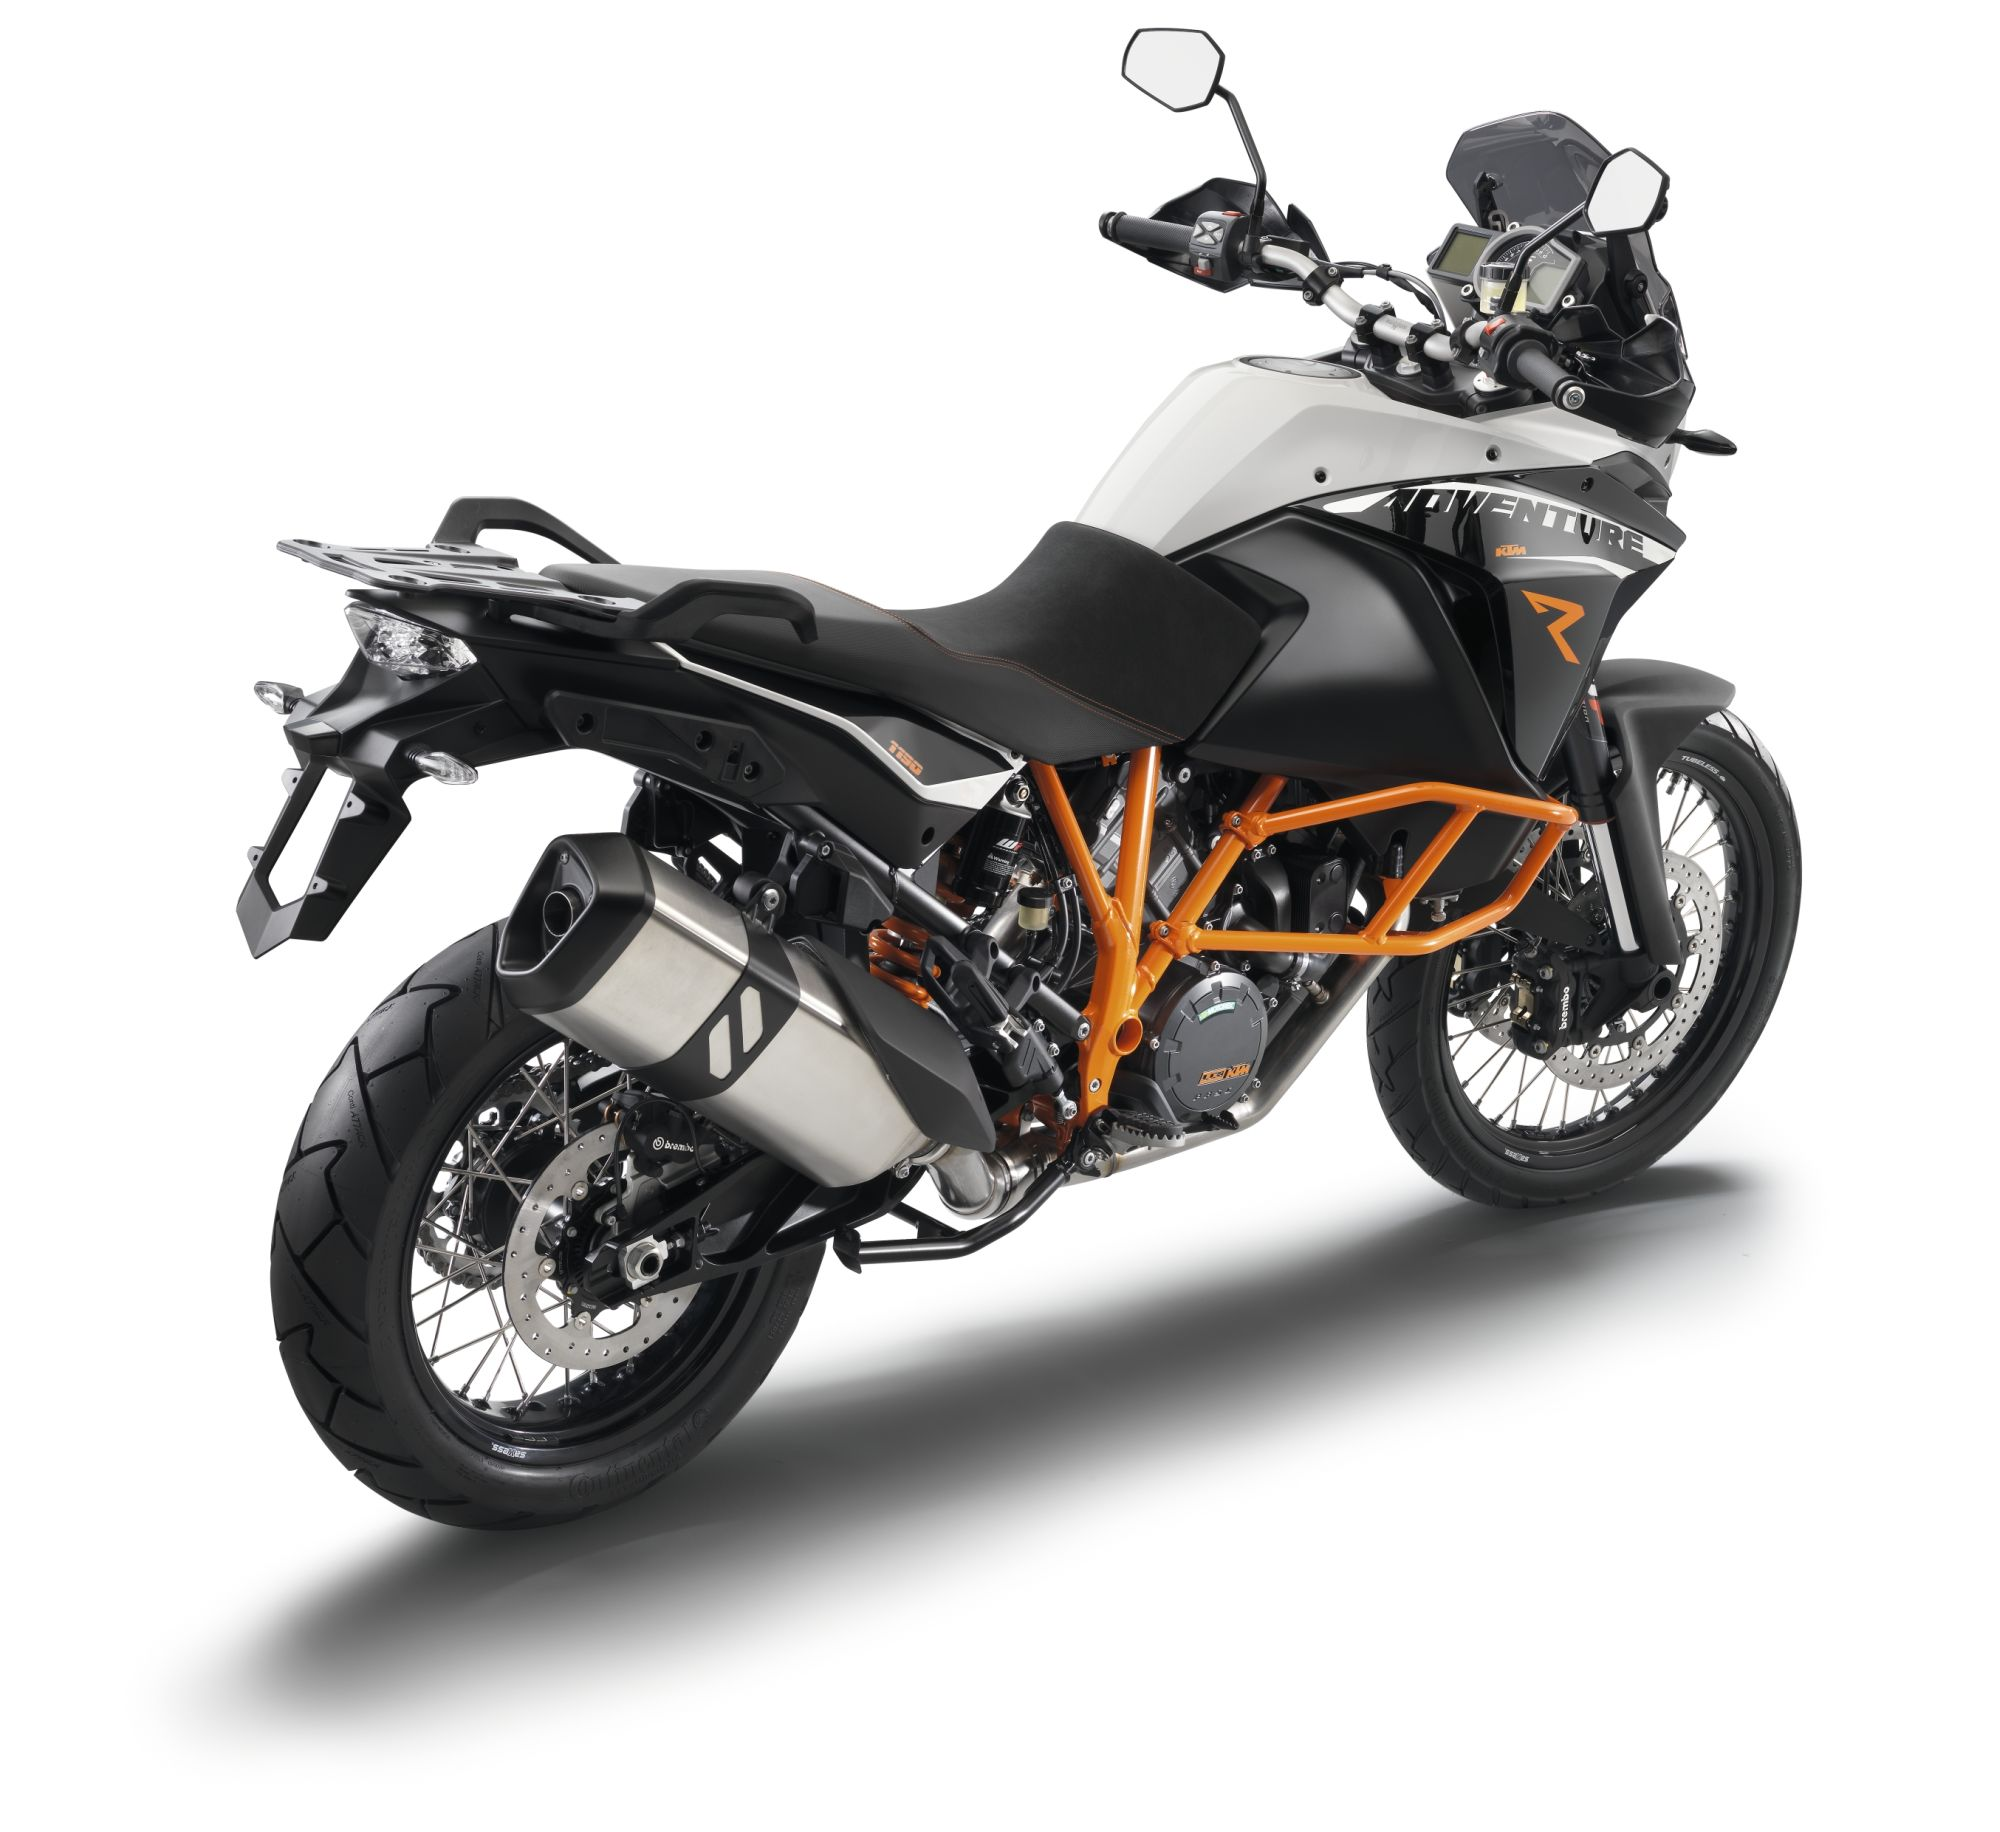 ktm 1190 adventure r alle technischen daten zum modell 1190 adventure r von ktm. Black Bedroom Furniture Sets. Home Design Ideas